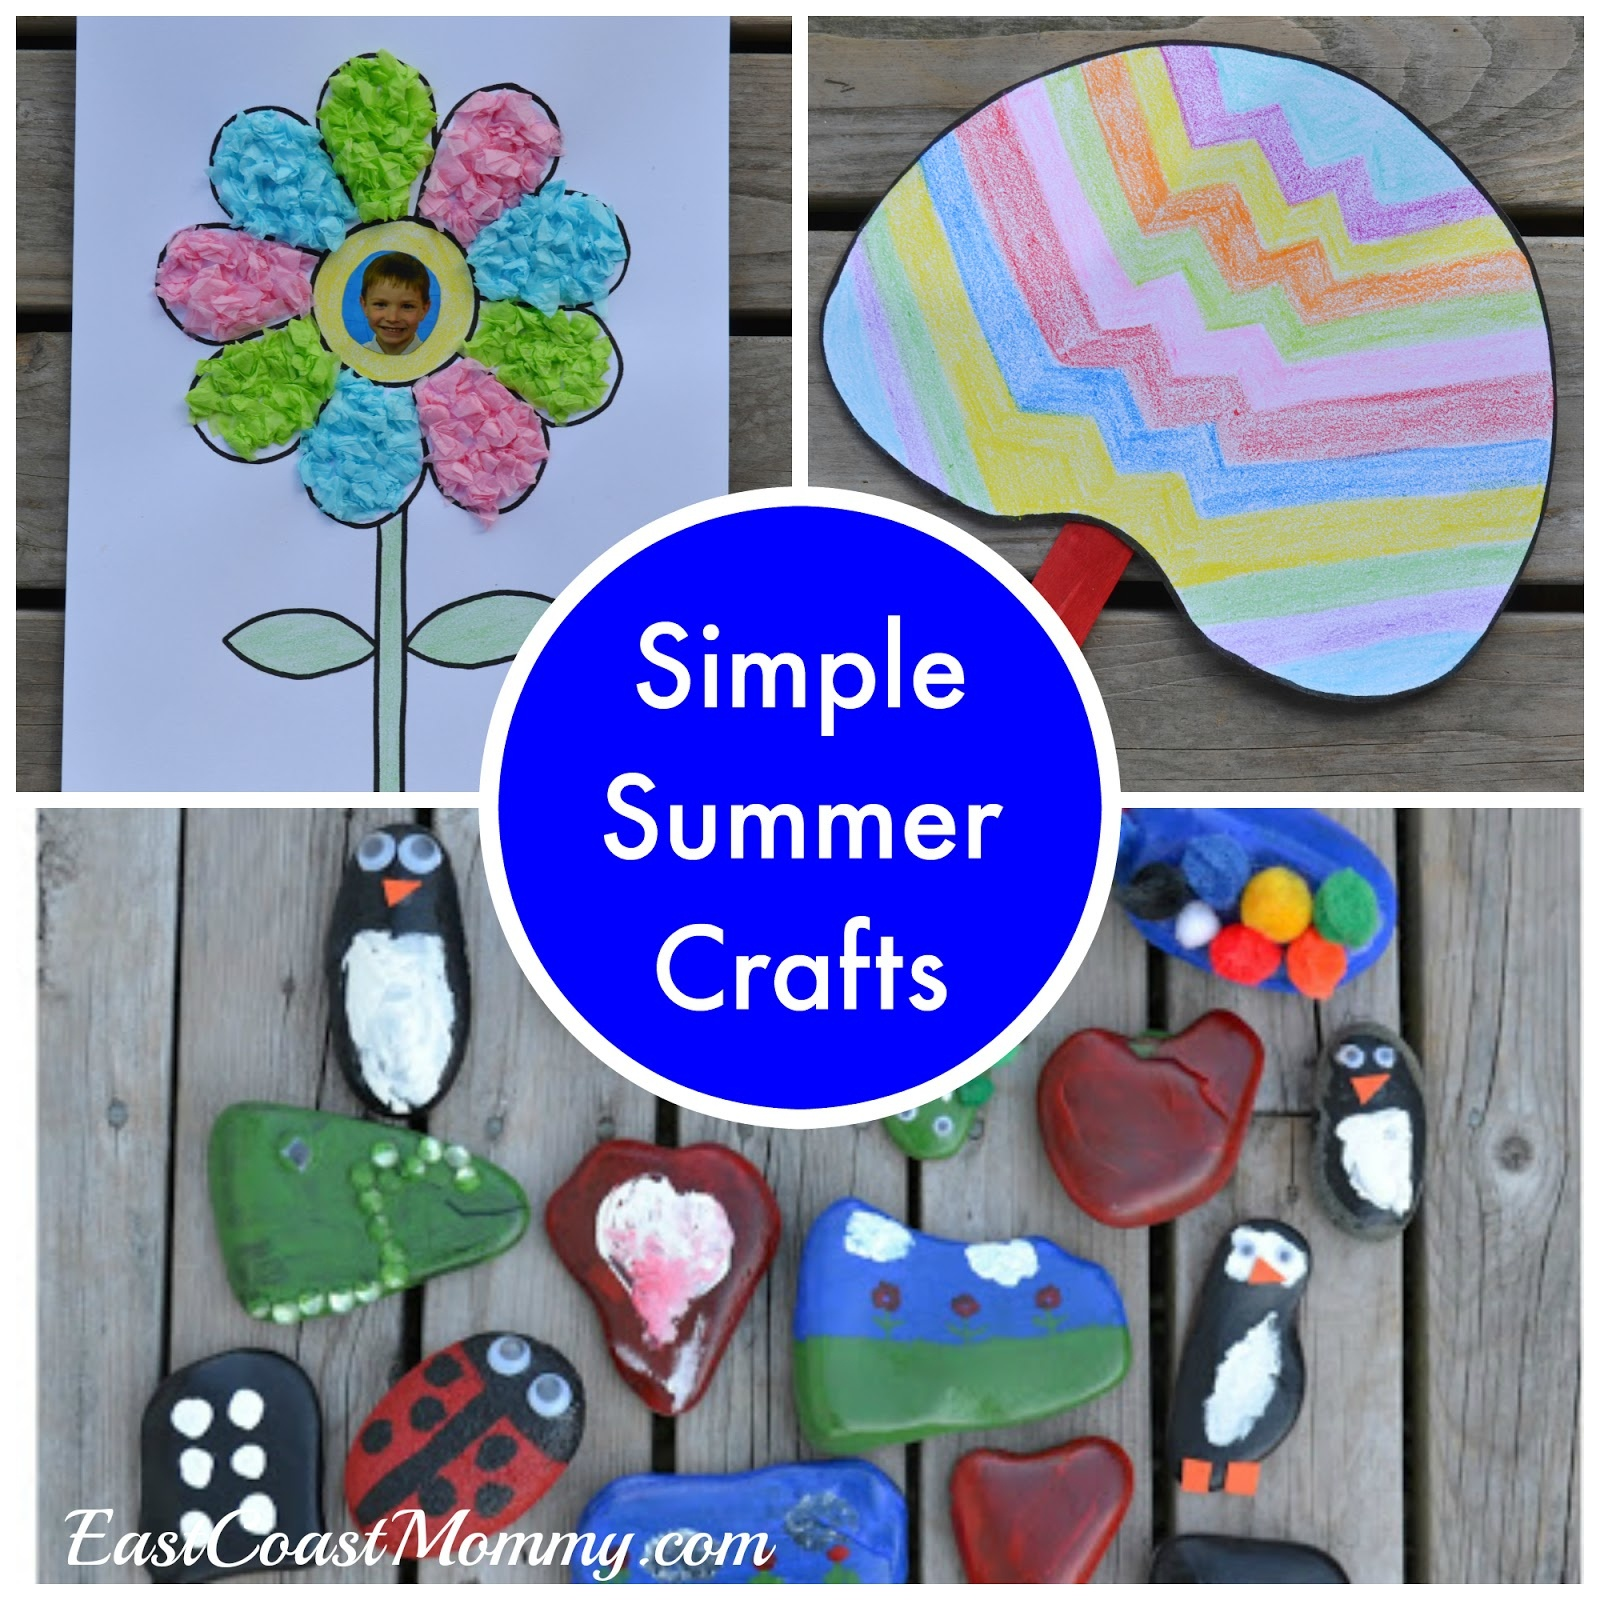 East Coast Mommy: Simple Summer Crafts {With Free Printable Templates} - Free Printable Craft Activities